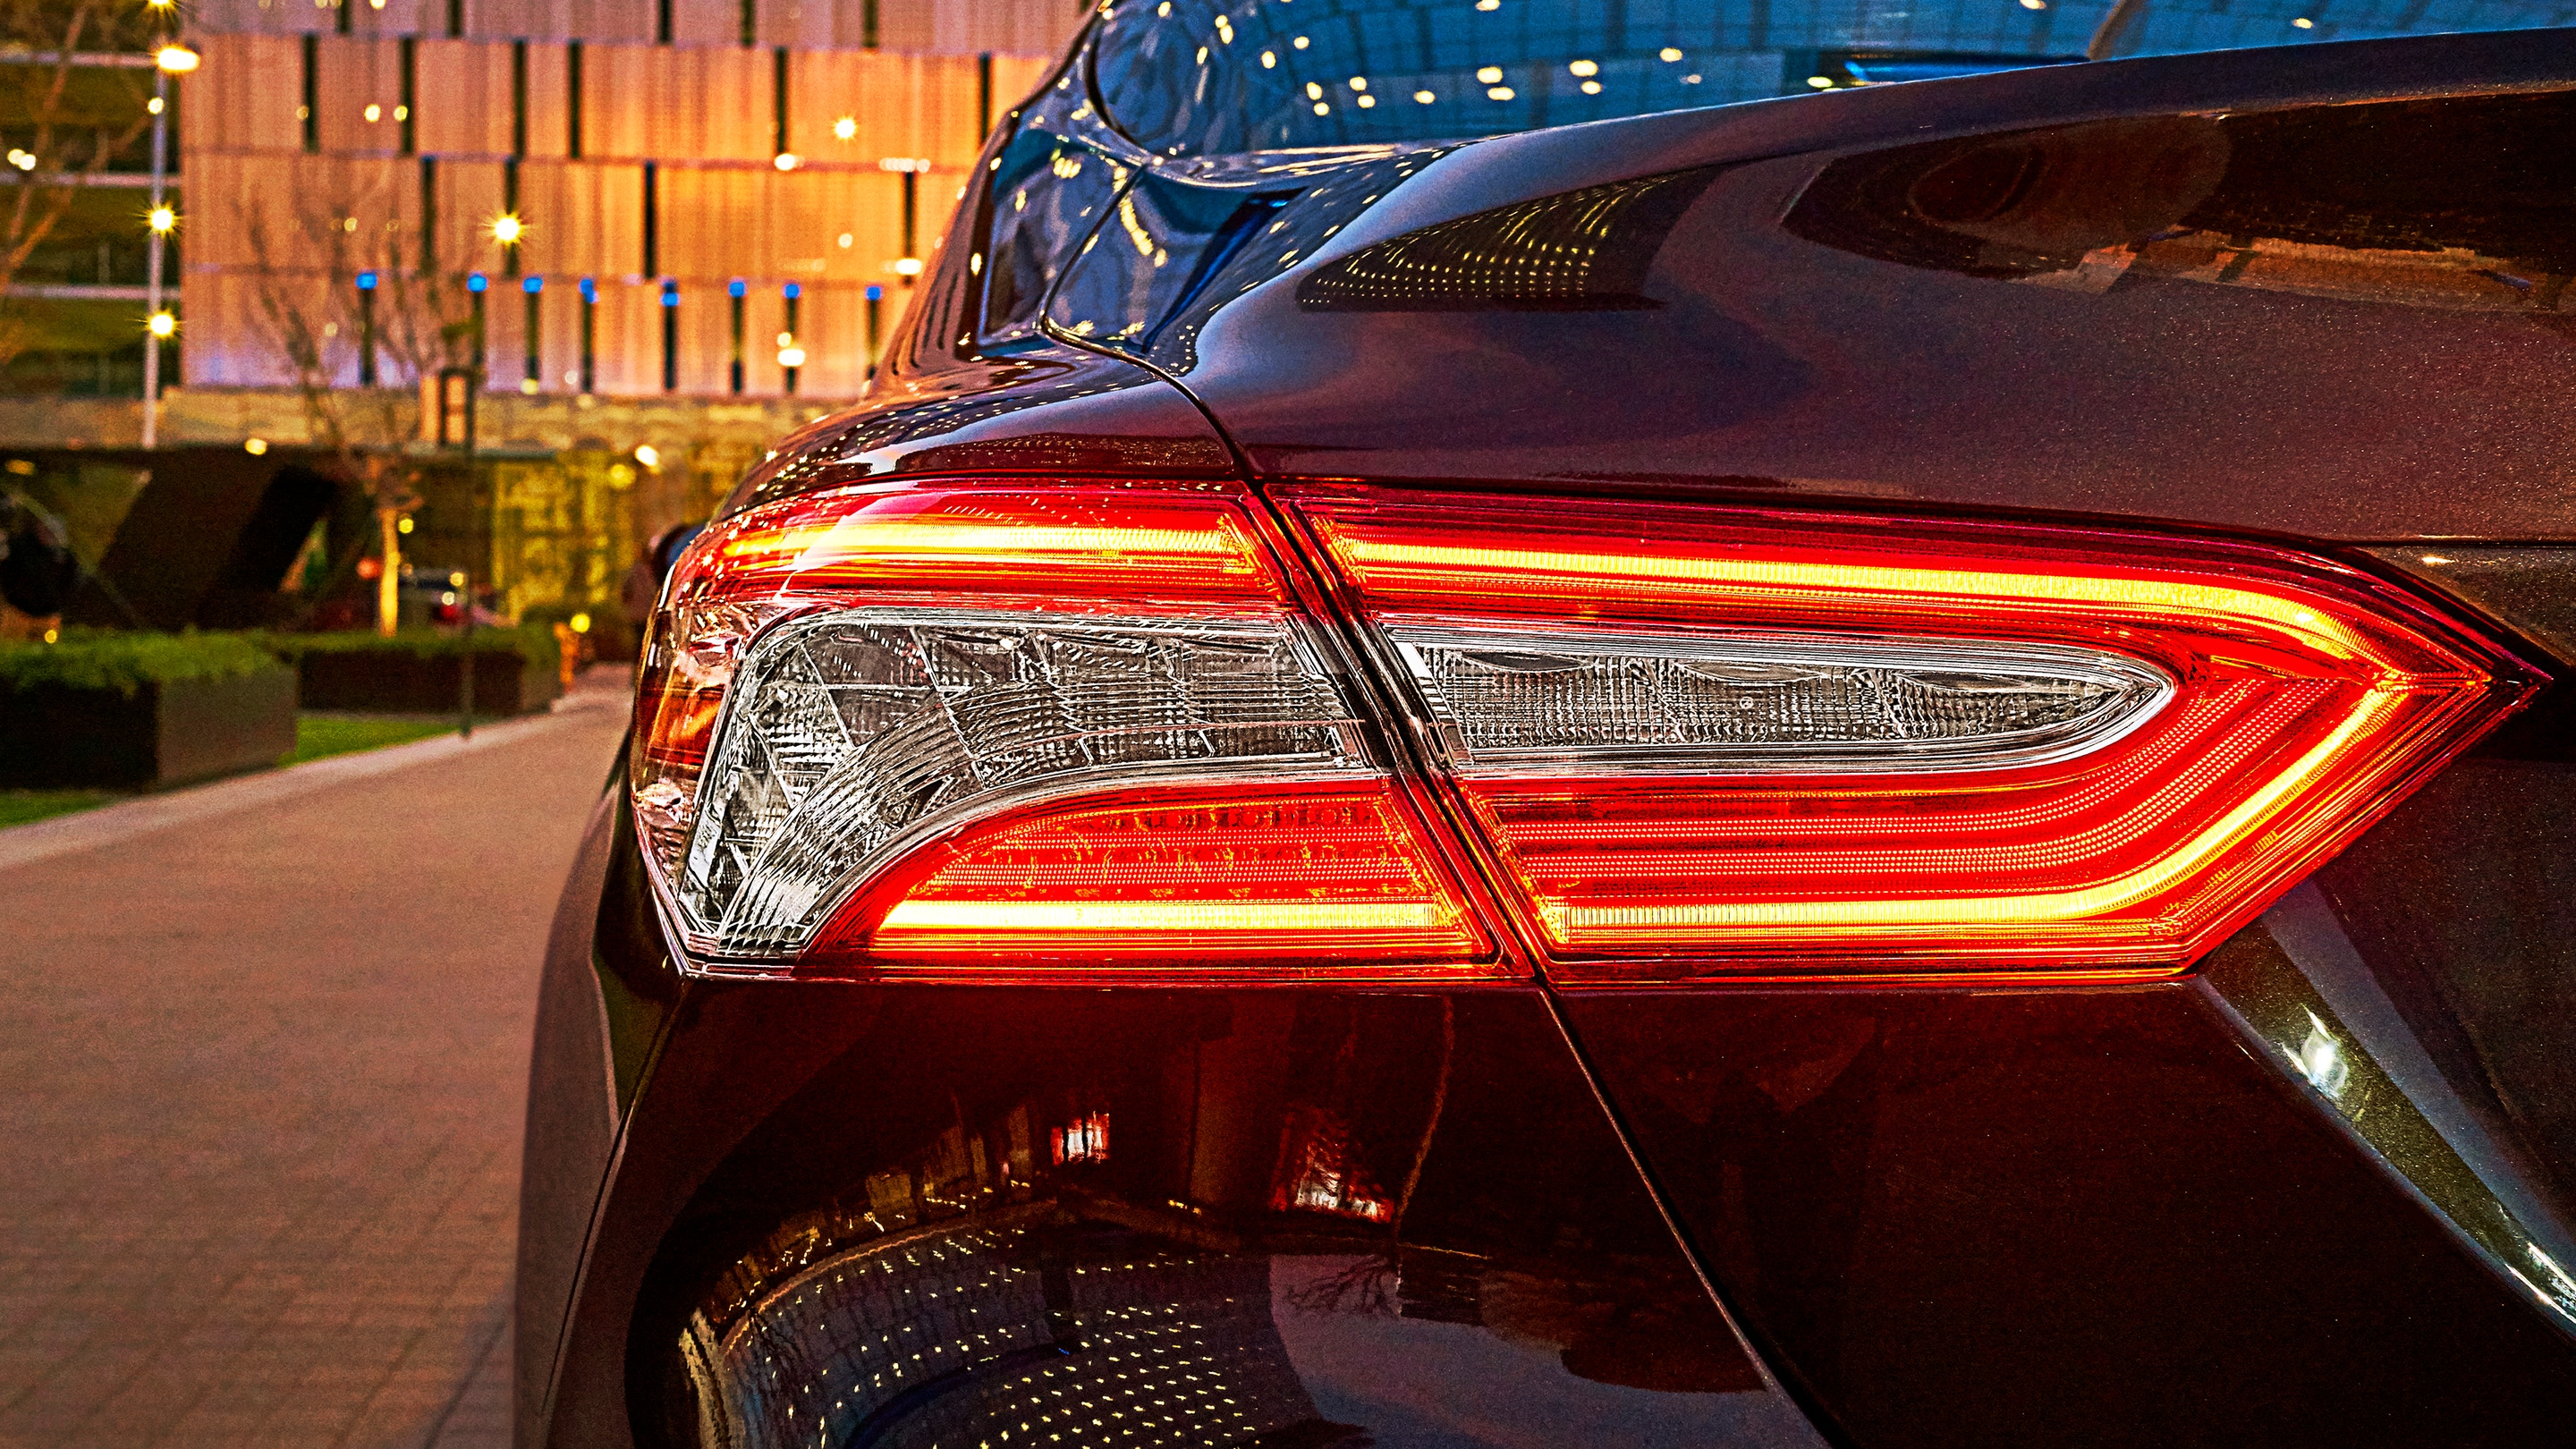 The Camry's Dazzling LED Lighting